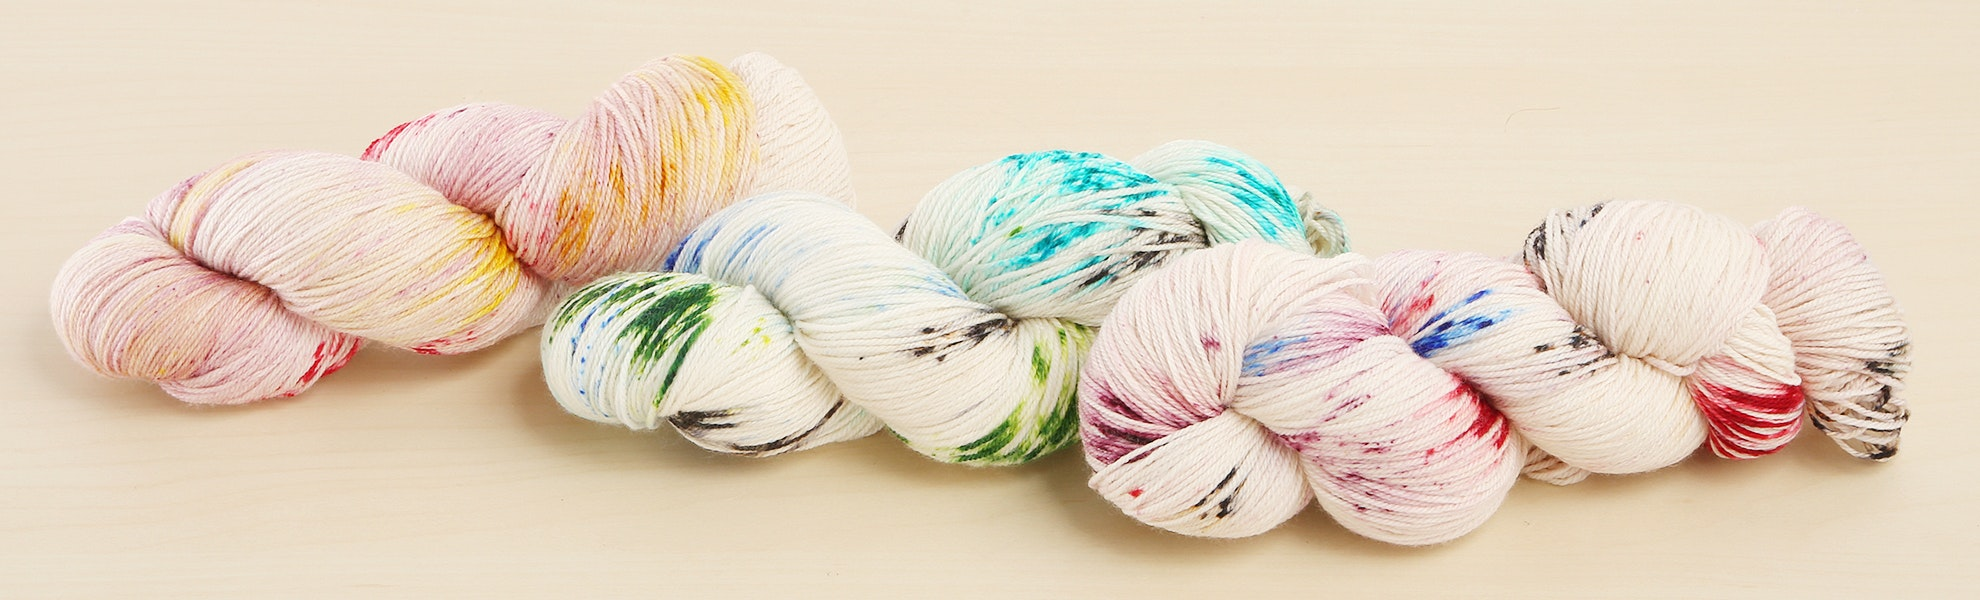 Serenity 20 Yarn by Zen Yarn Garden